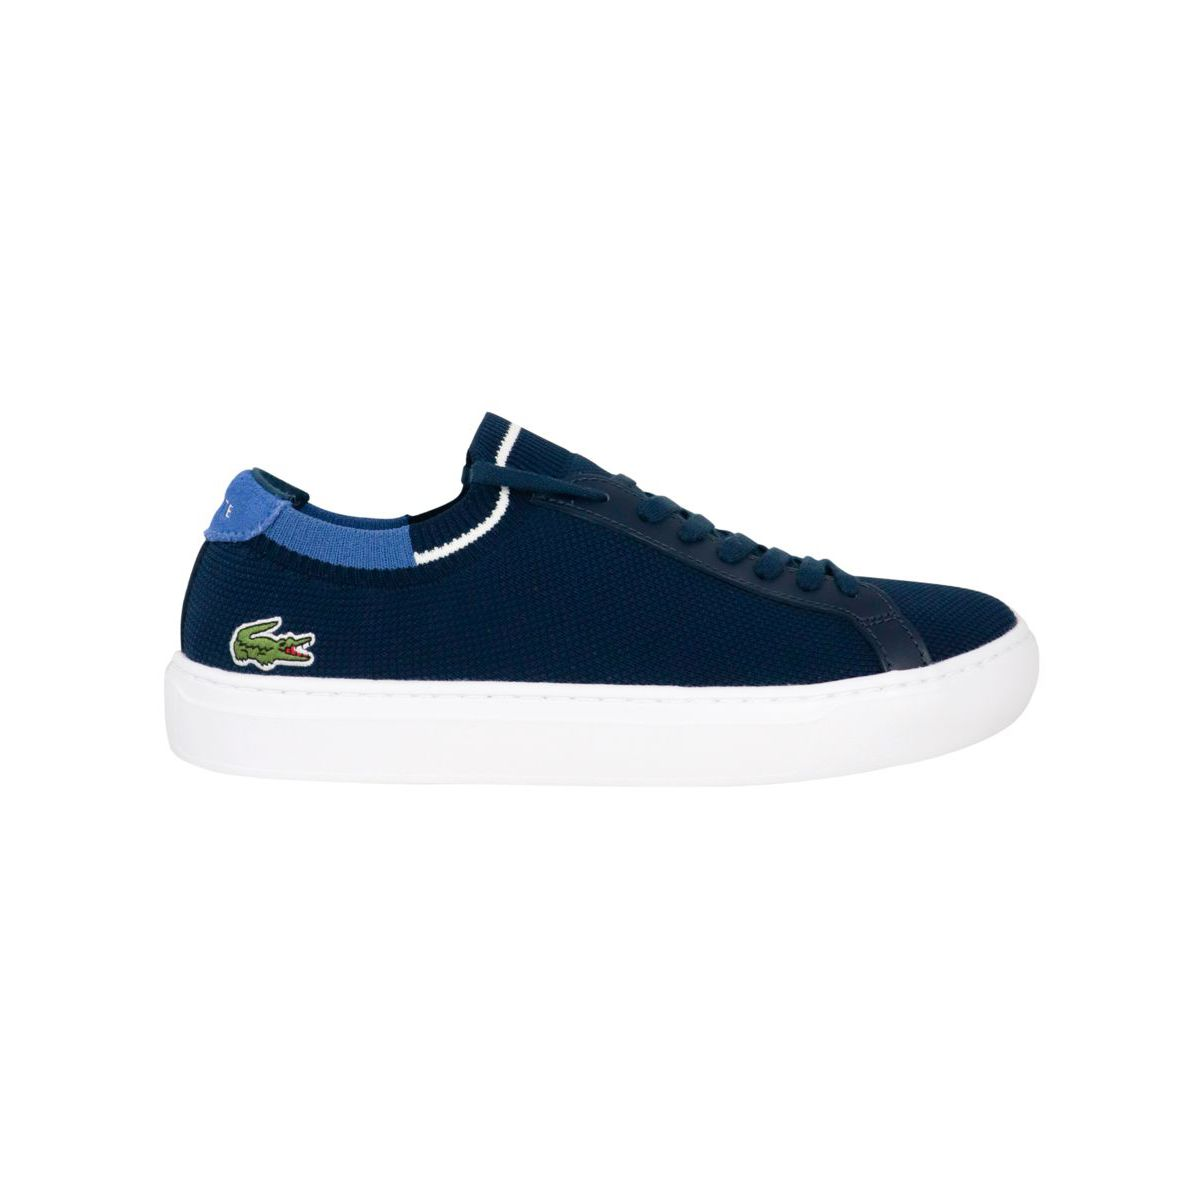 La Piquee fabric sneakers with box bottom Blue Lacoste